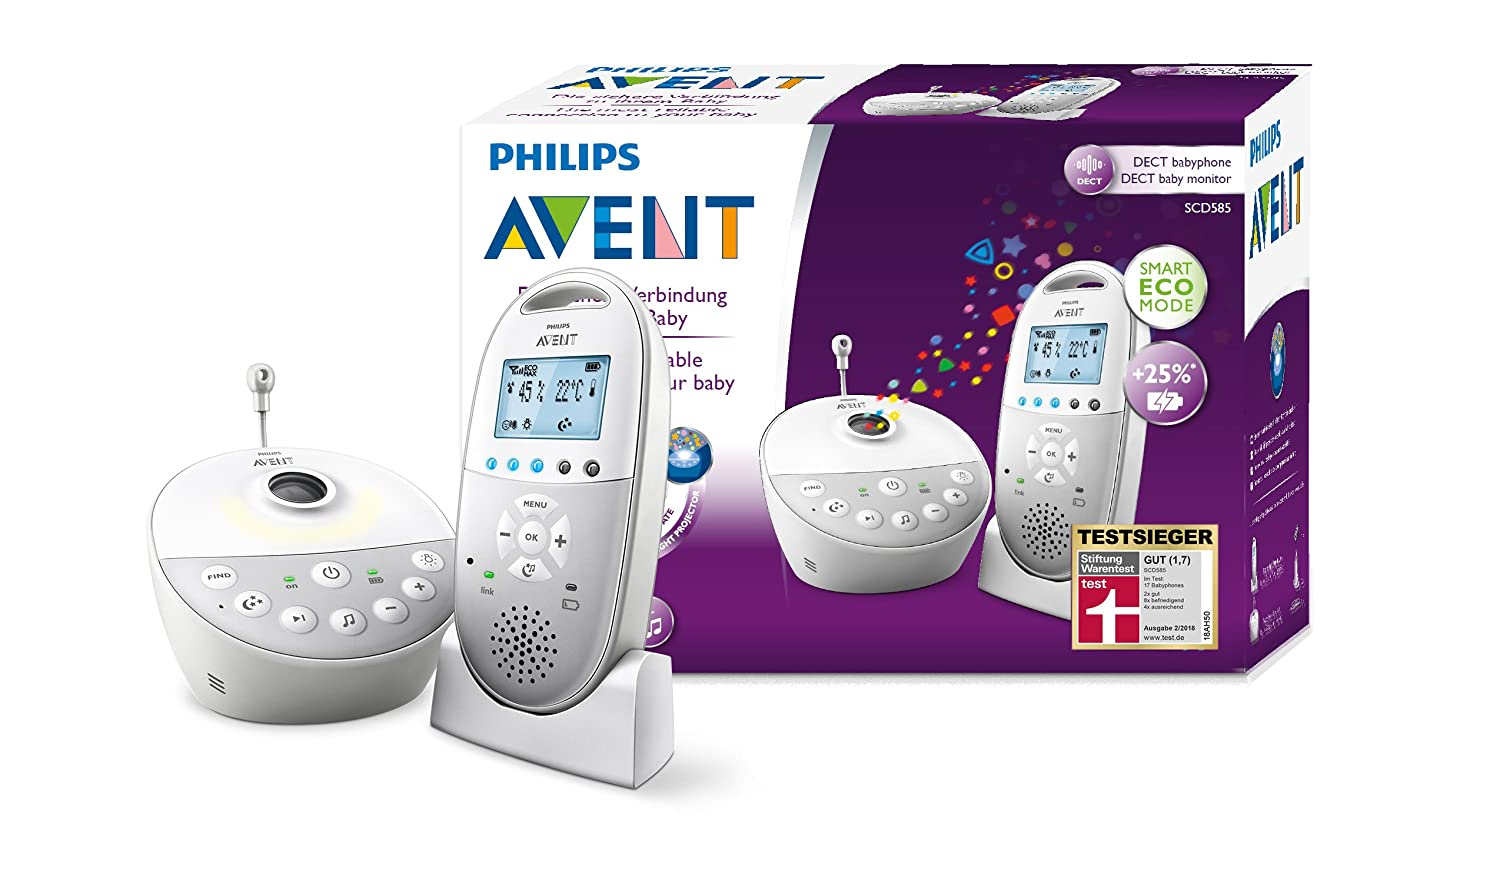 Philips Avent Audio-Babyphone SCD585/26, DECT-Technologie, Sternenhimmel, Eco-Mode, Gegensprechnfunktion Philips GmbH - Baby (VSS/FO)